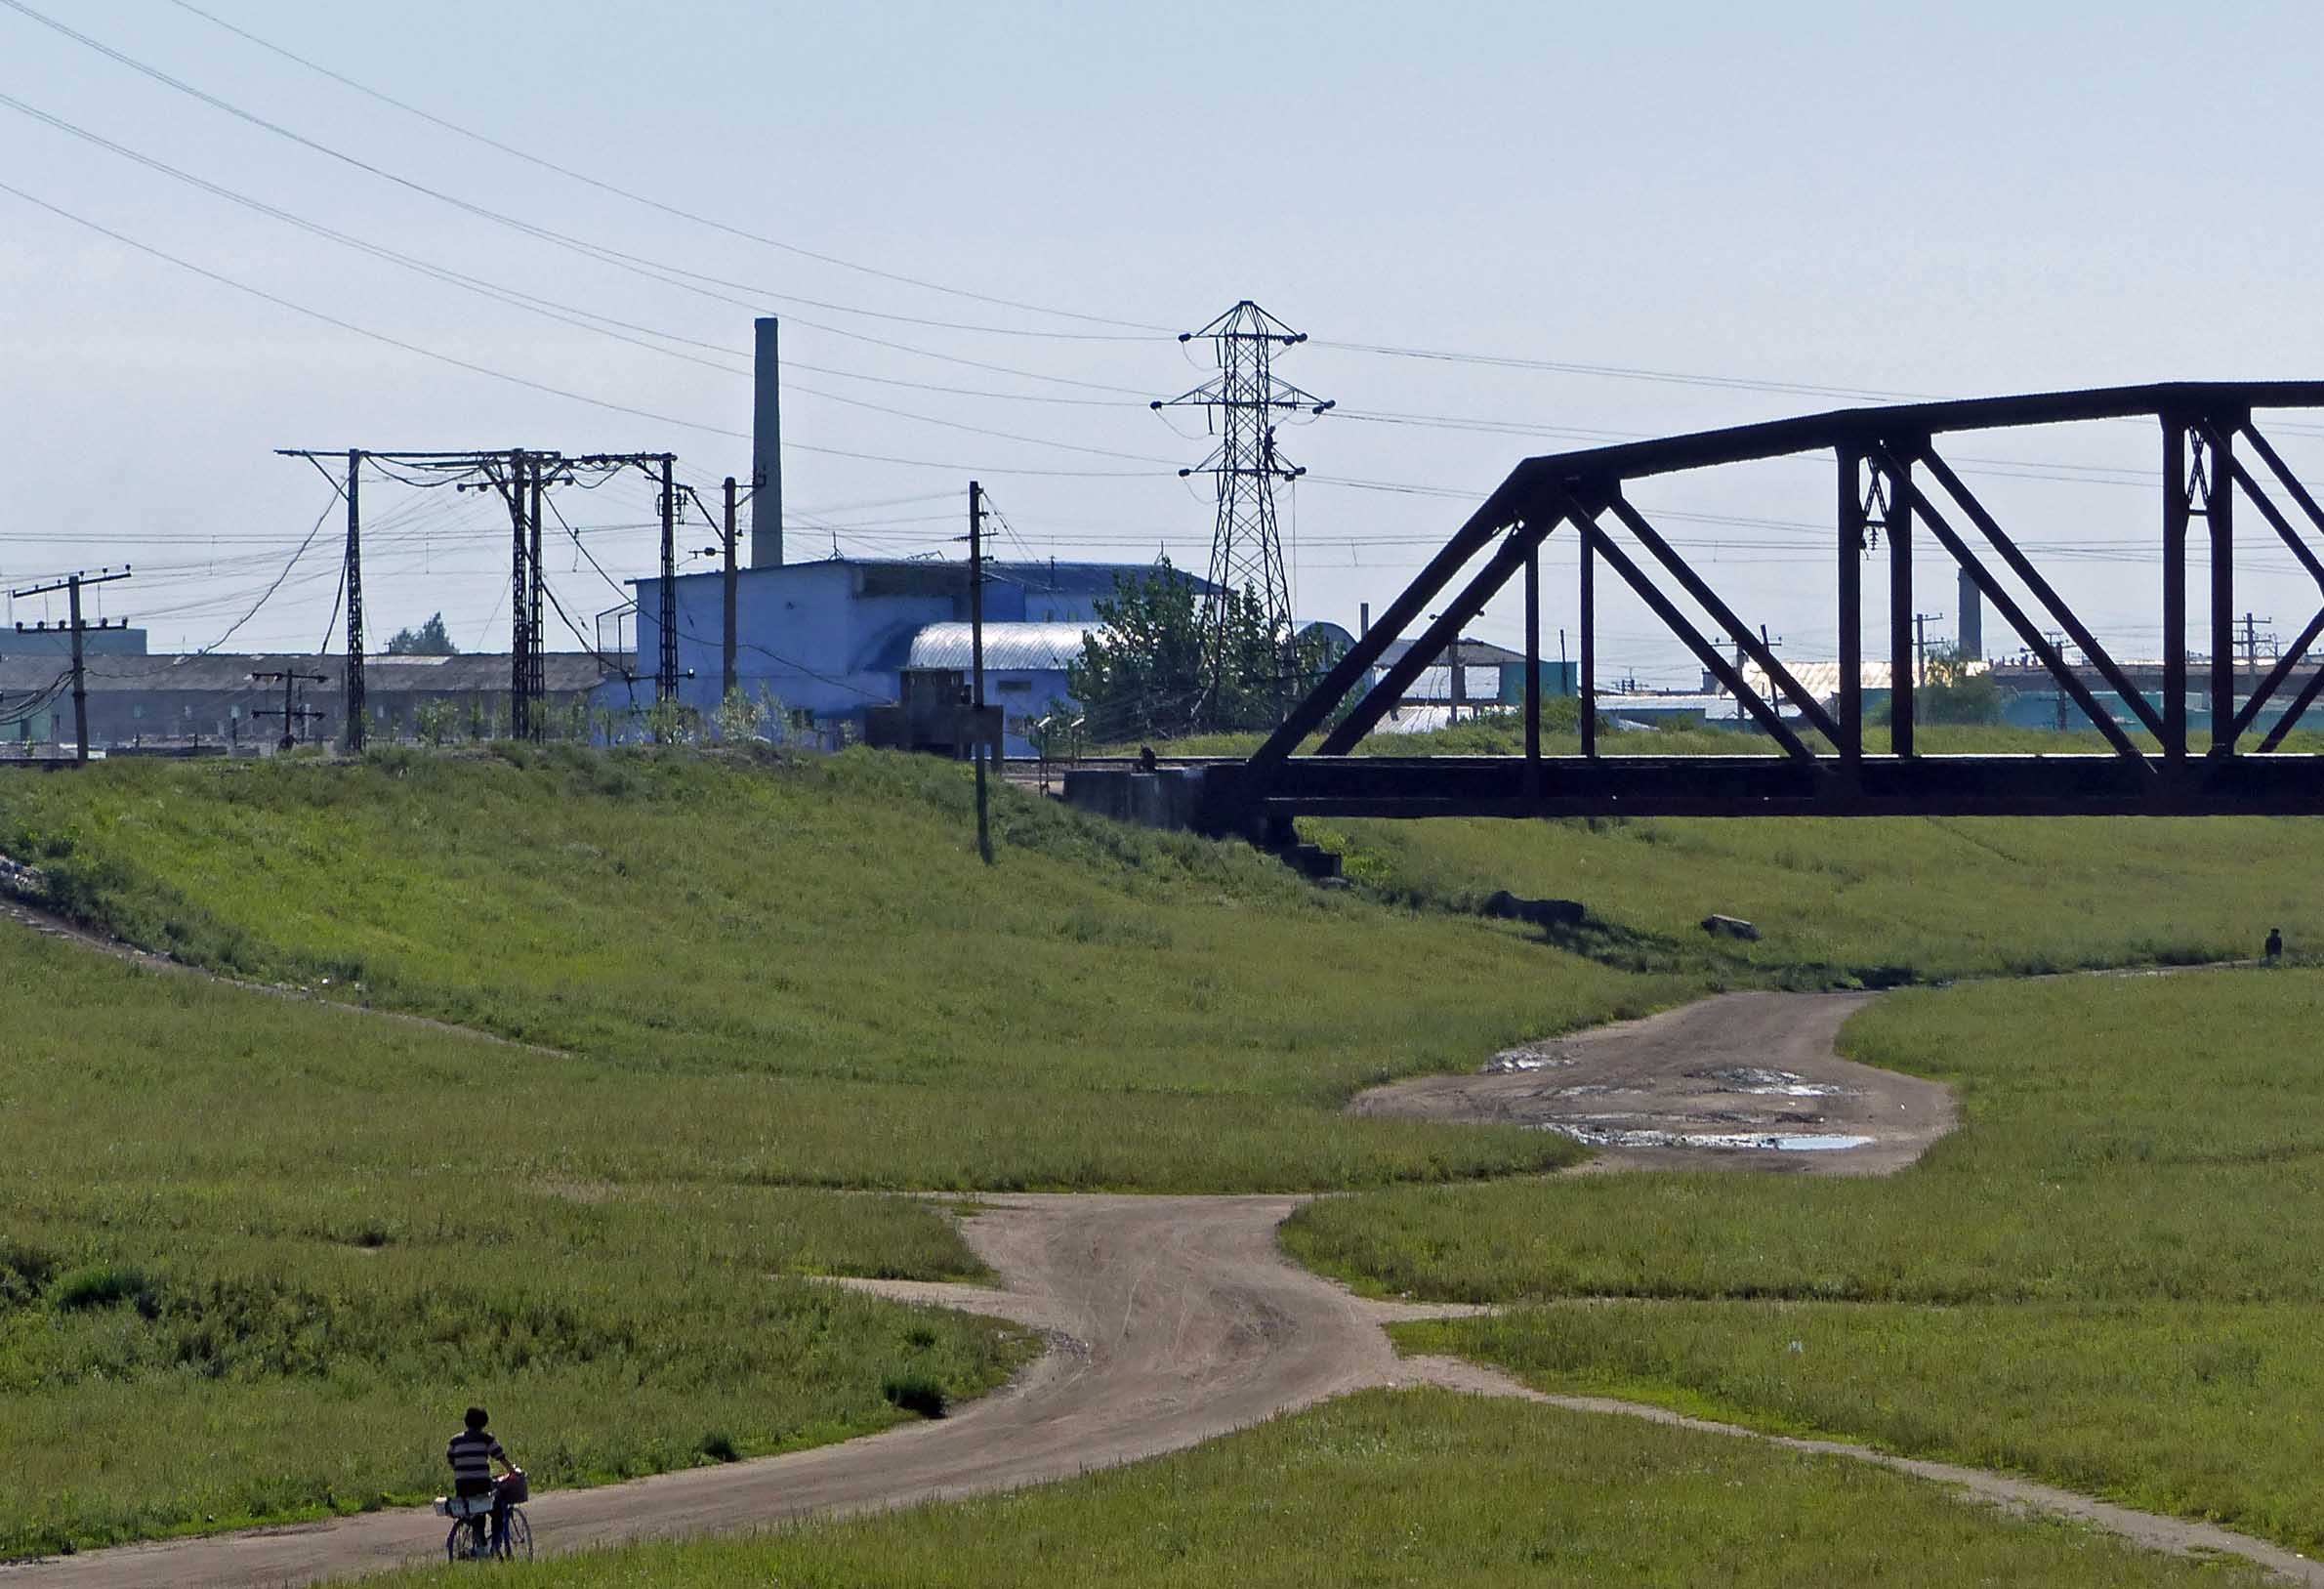 Man cycling across grassy area with factories beyond